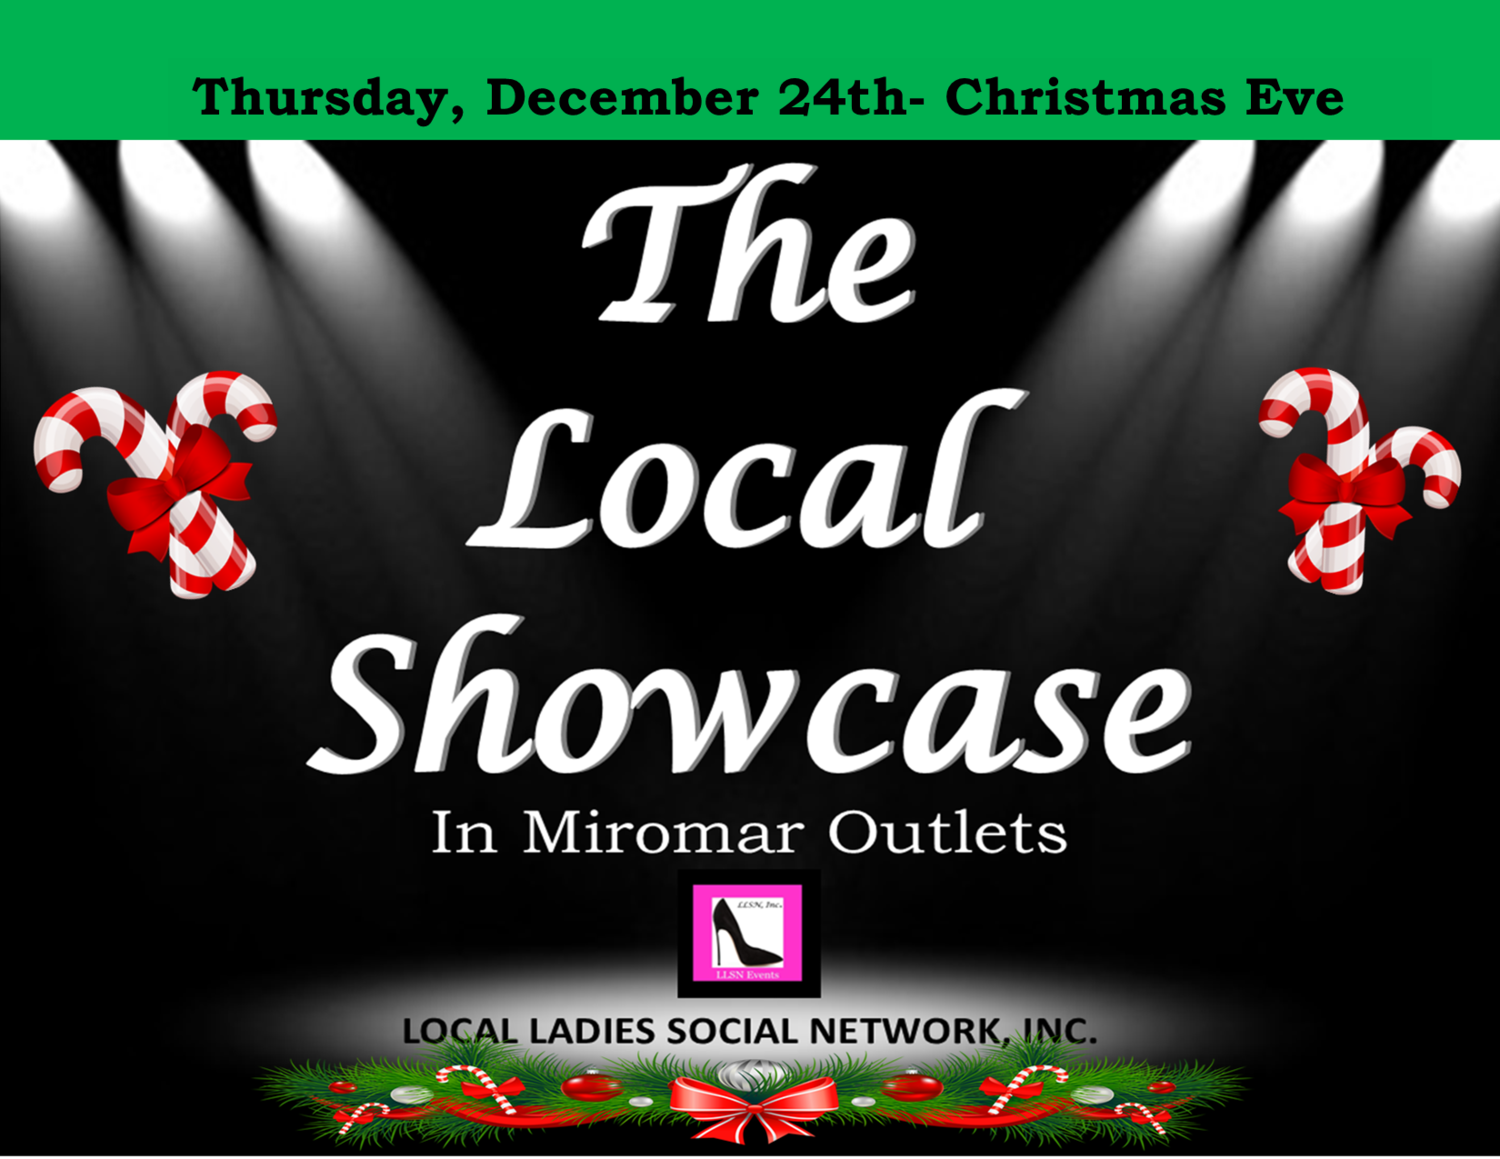 Thursday, December 24th 11am-7pm.